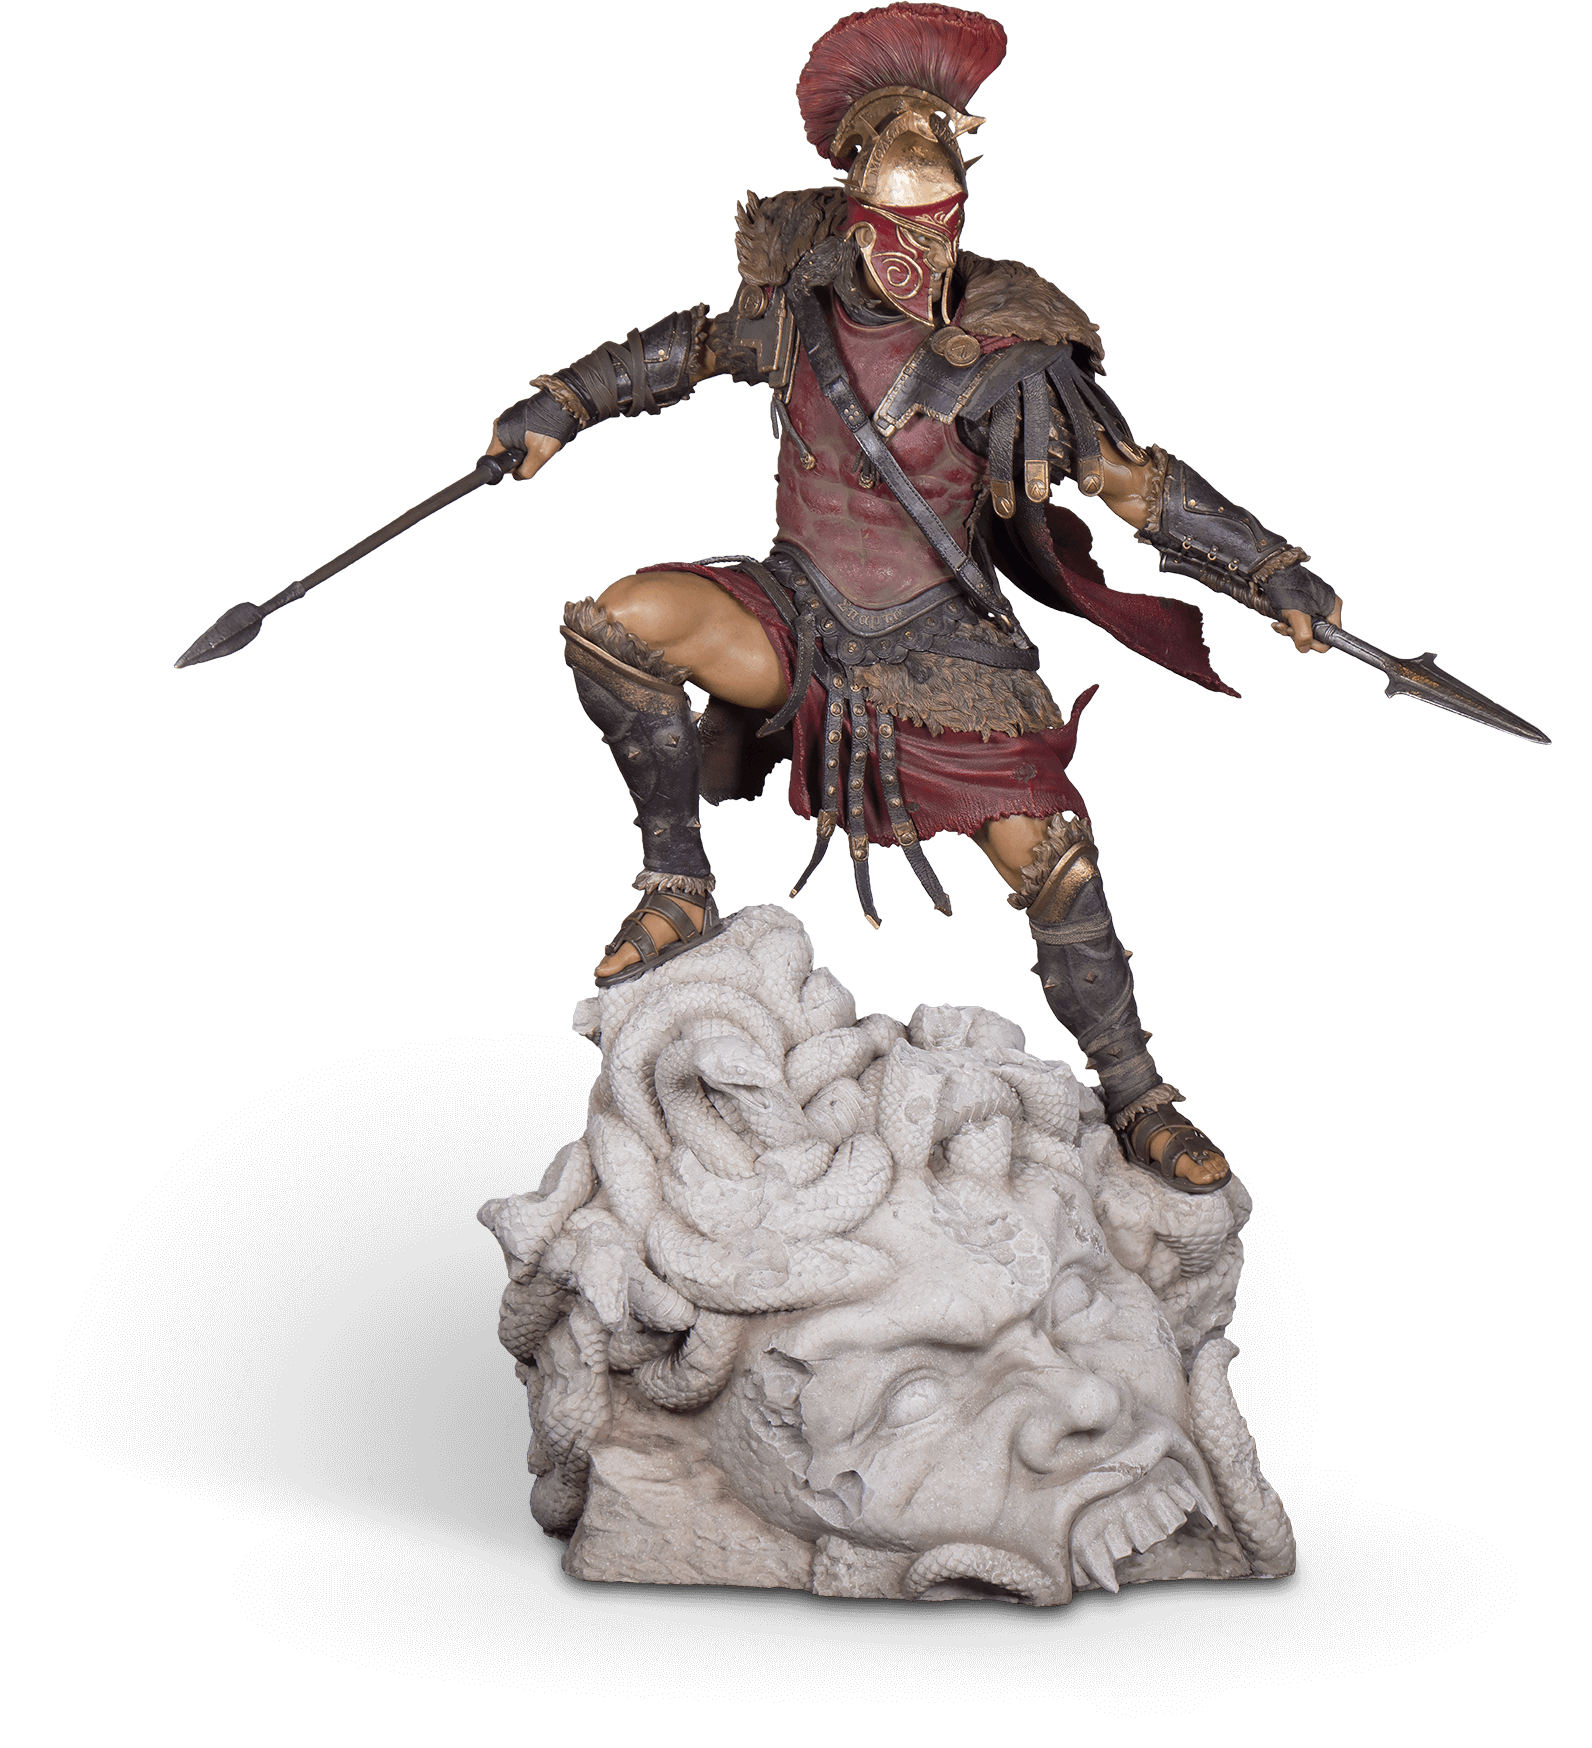 Assassin S Creed Odyssey The Alexios Legendary Figurine Ubisoft Store Exclusive Assassin S Creed Statue Character Statue Assassins Creed Artwork